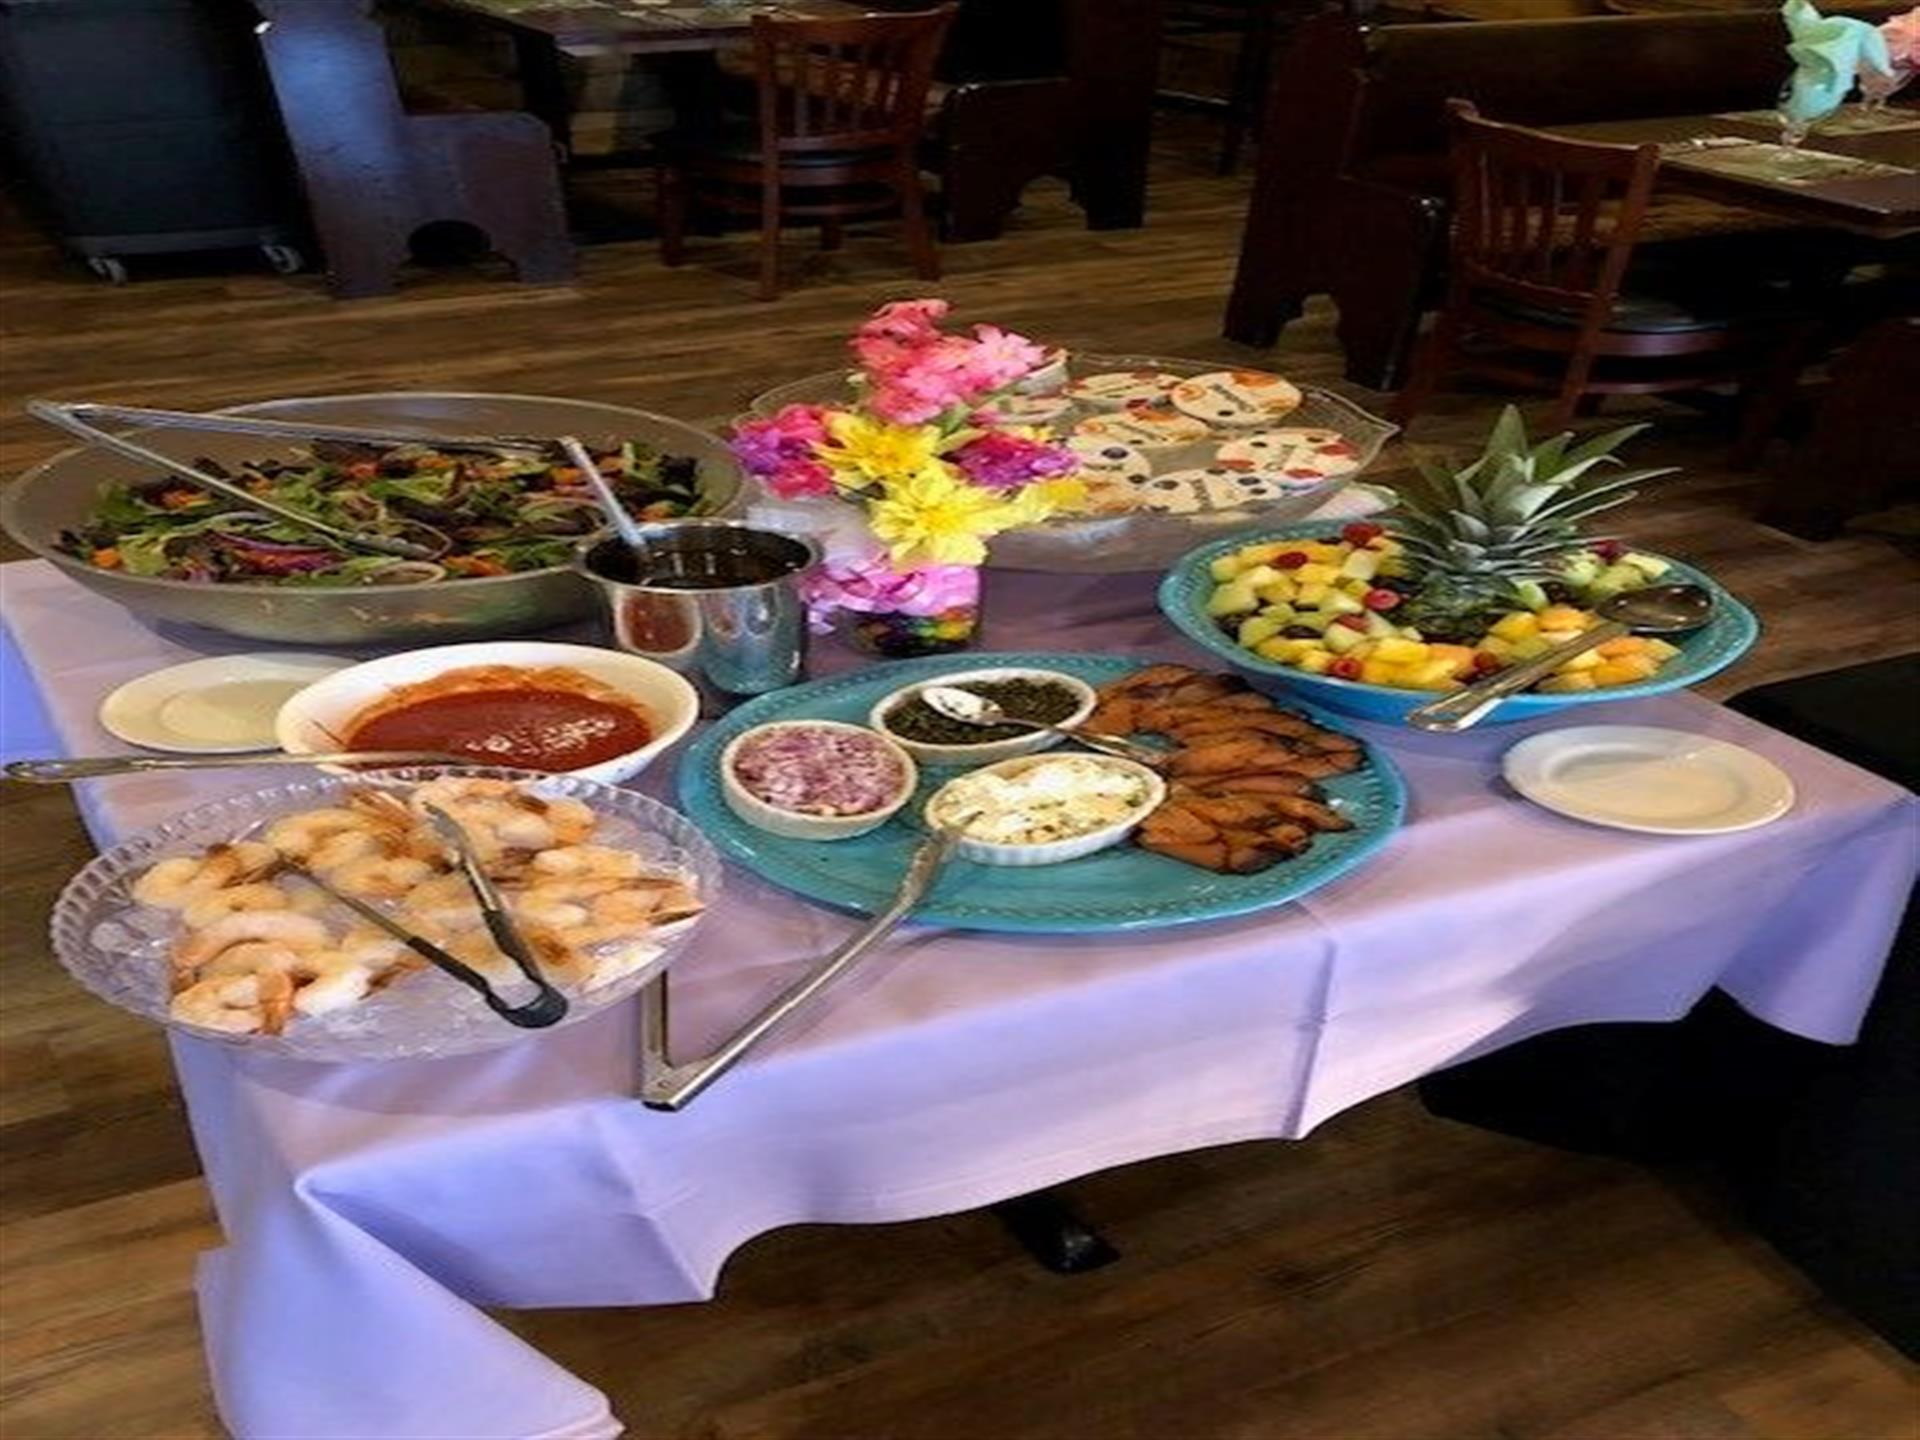 various platters of food displayed on a table with a purple tablecloth